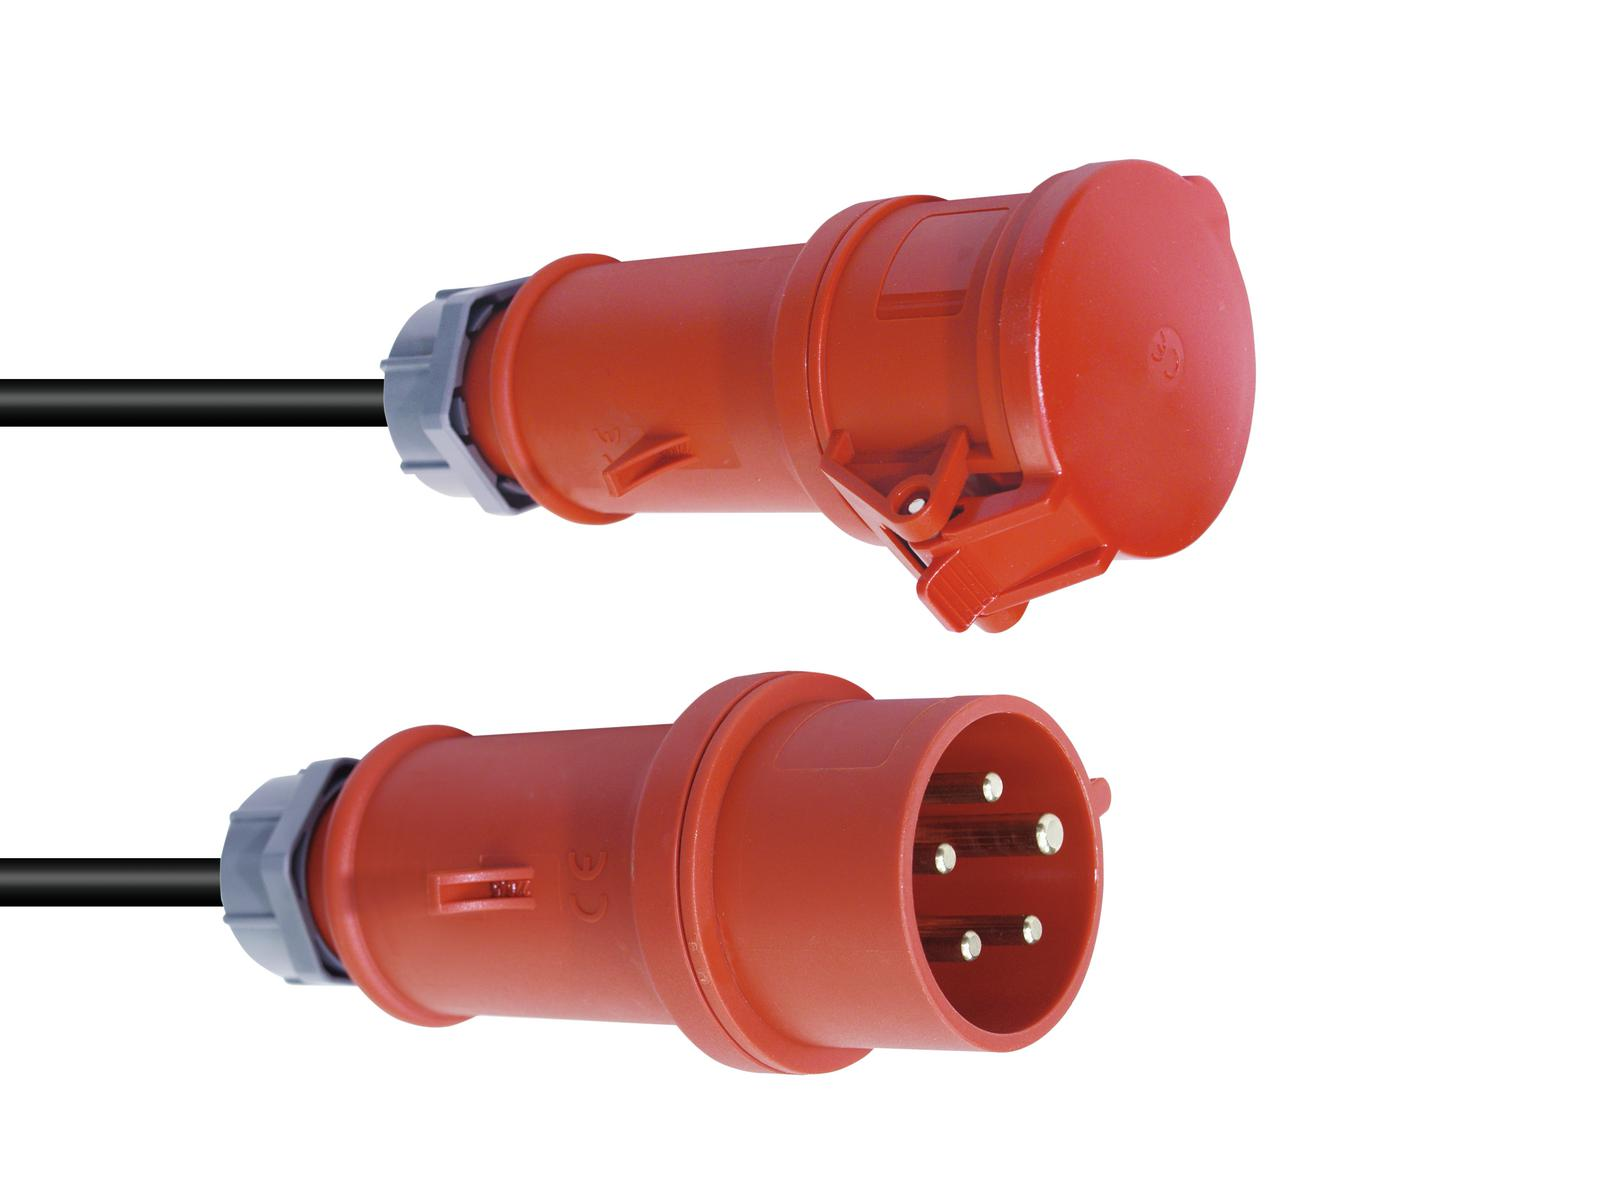 Extension PSSO CEE 16A 5x2,5 15 RED PlugA M PlugB F Cable, H07RN G2.5